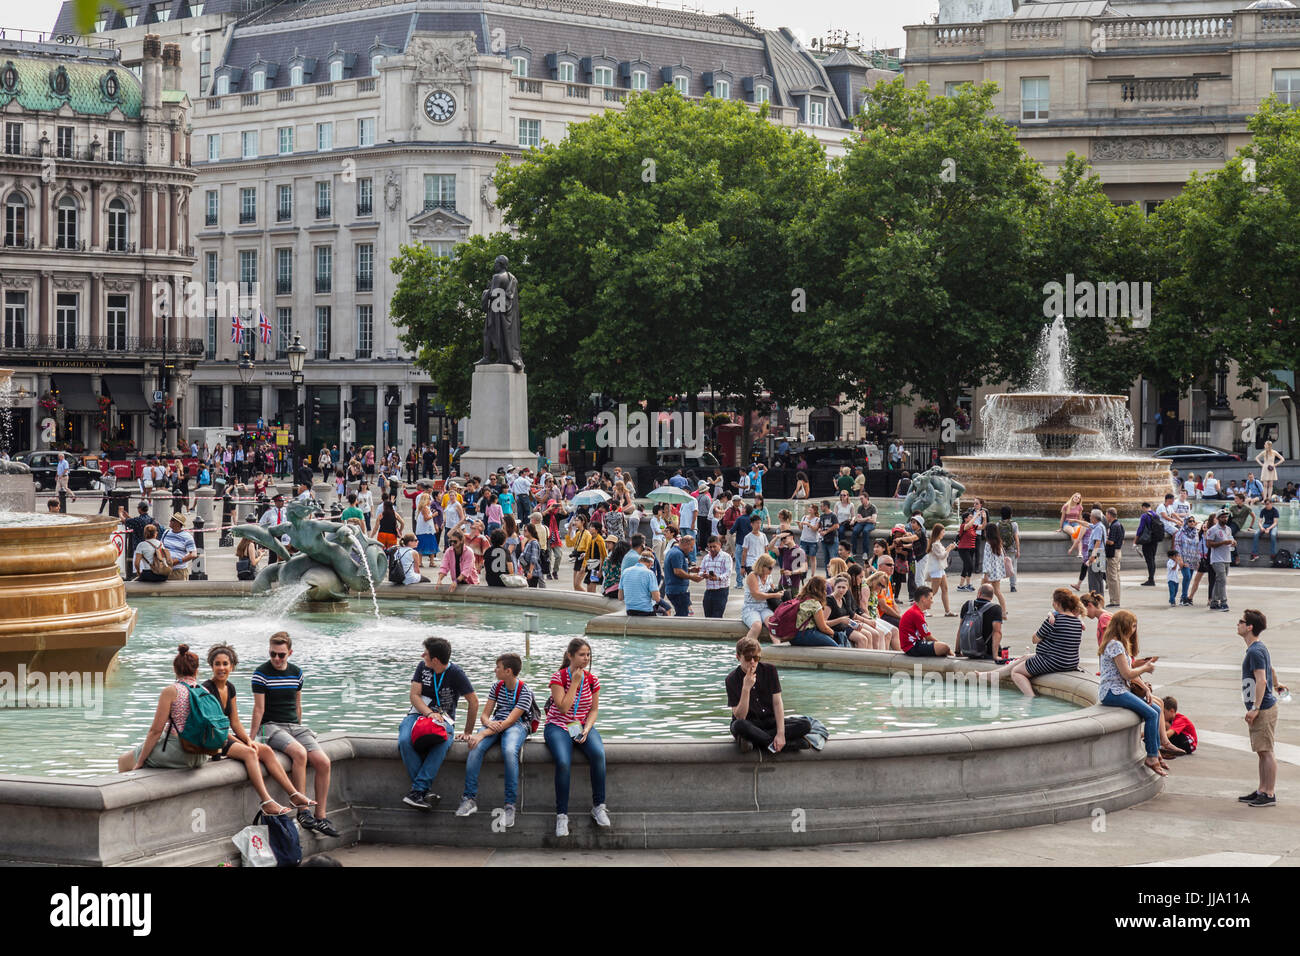 Crowds of people, mainly tourists, around the fountains in Trafalgar square in central London, England, UK - Stock Image